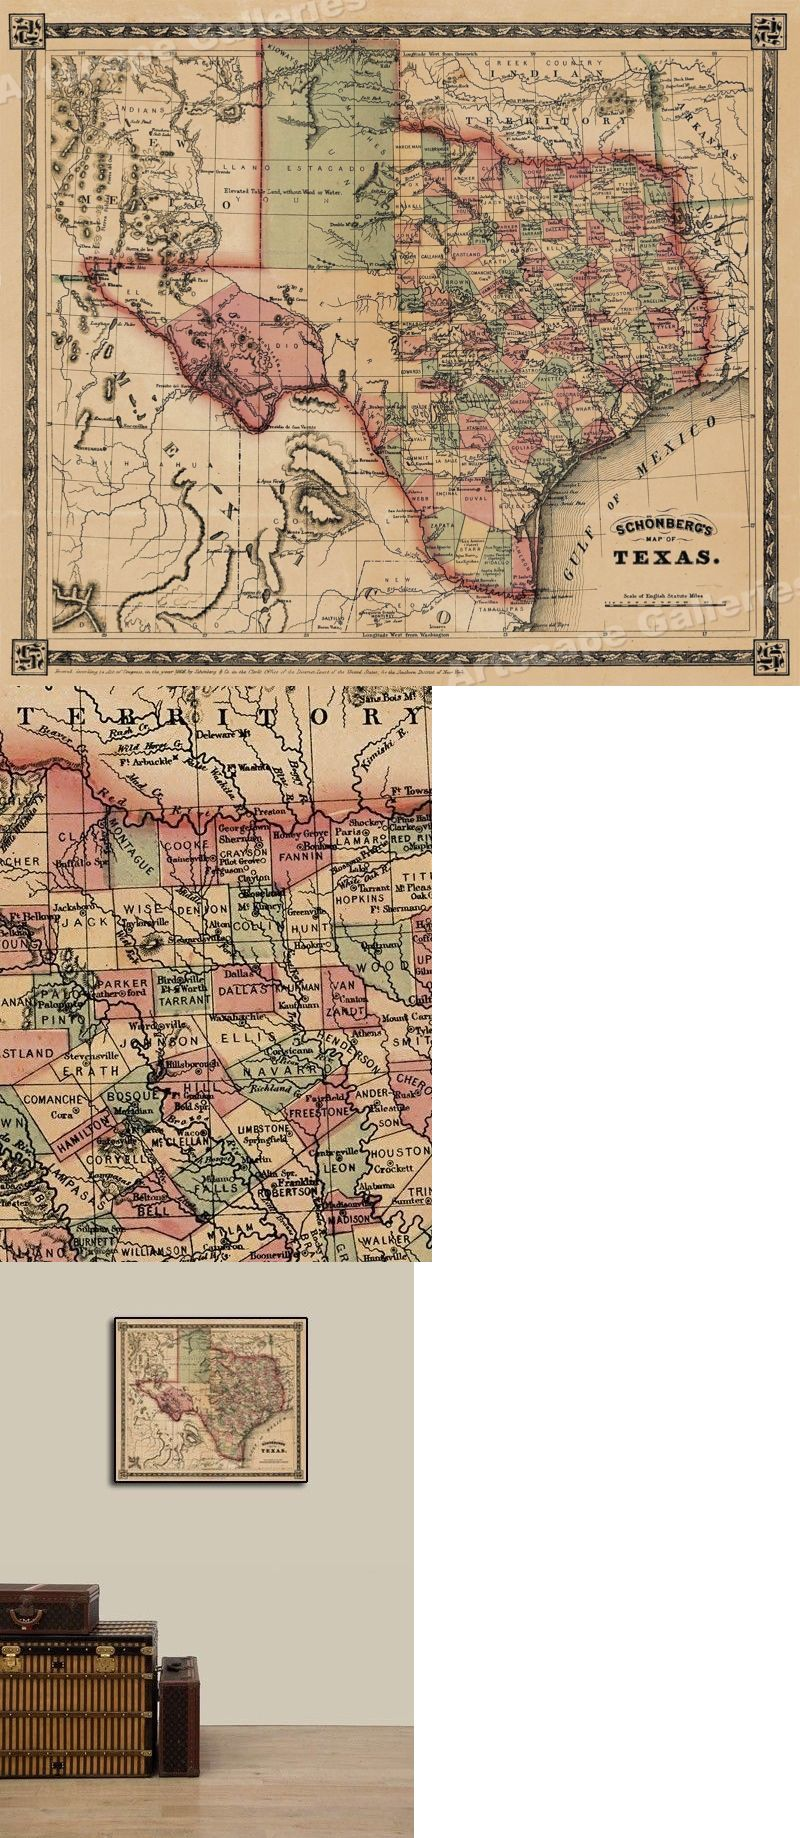 1866 Schönberg/'s Early Map of Texas Historic Map 24x28